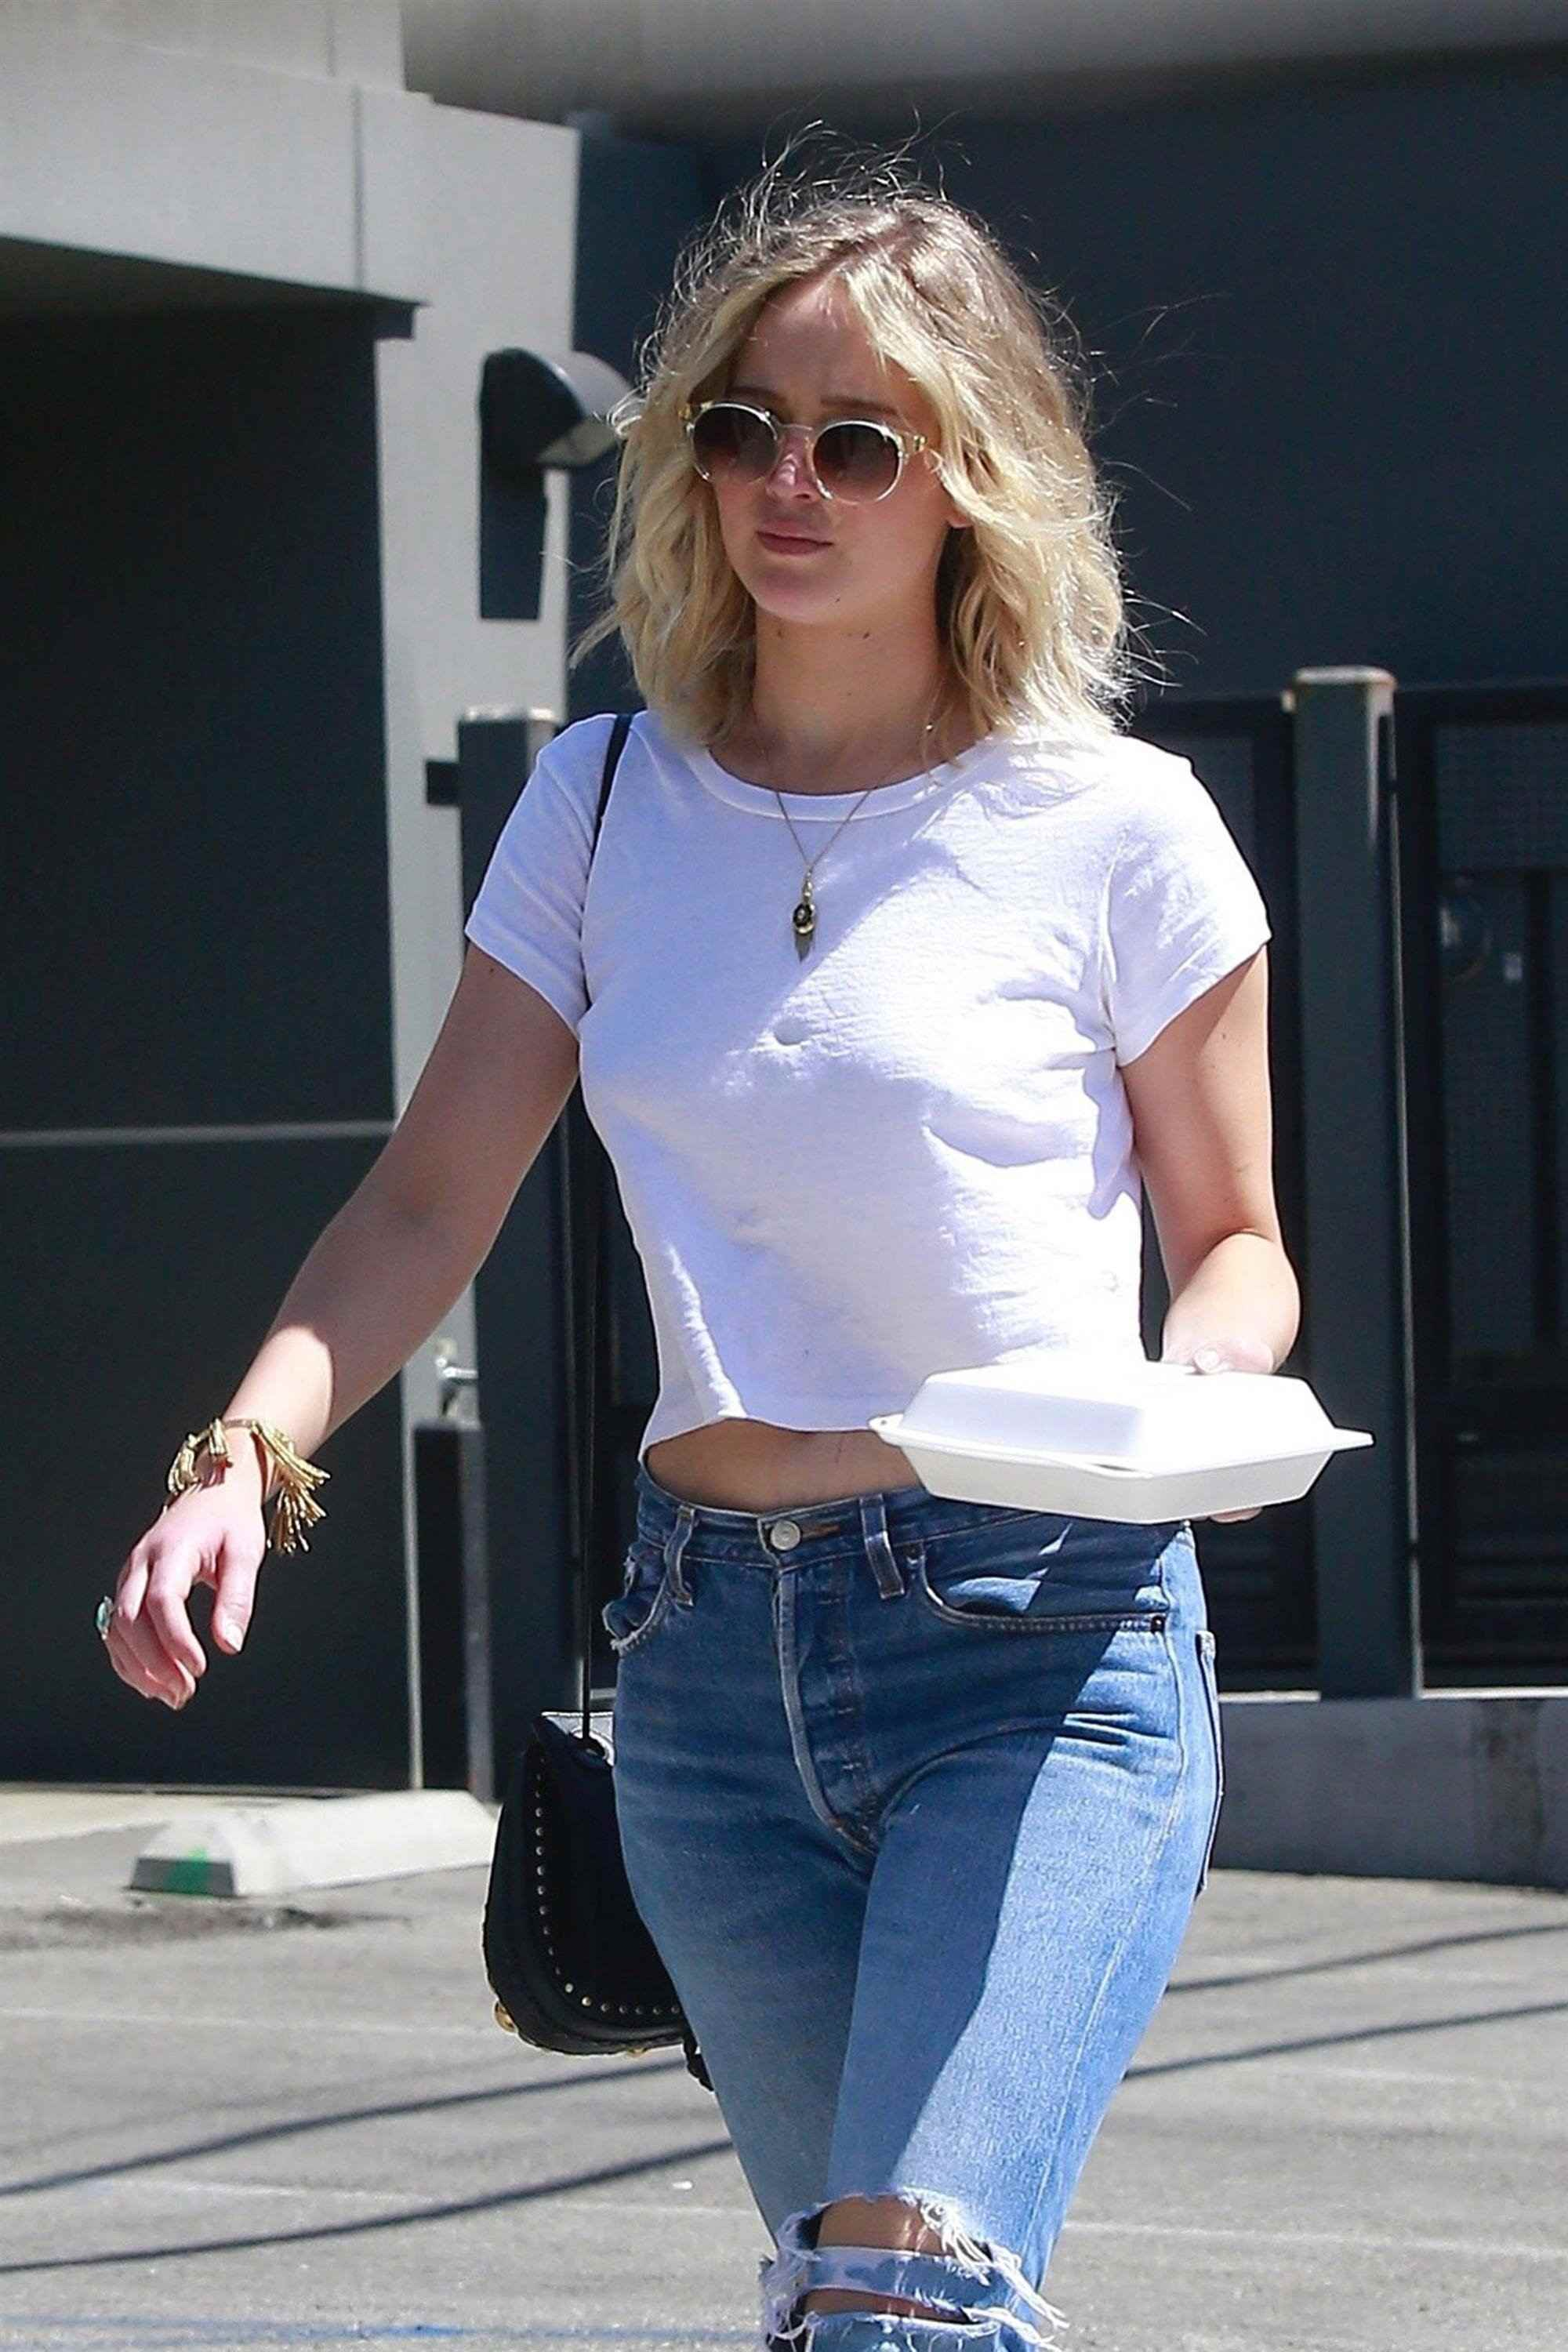 http://jenniferlawrencedaily.com/gallery/albums/userpics/10001/Grabbing_Lunch_in_LA_-_June_25-07.jpg